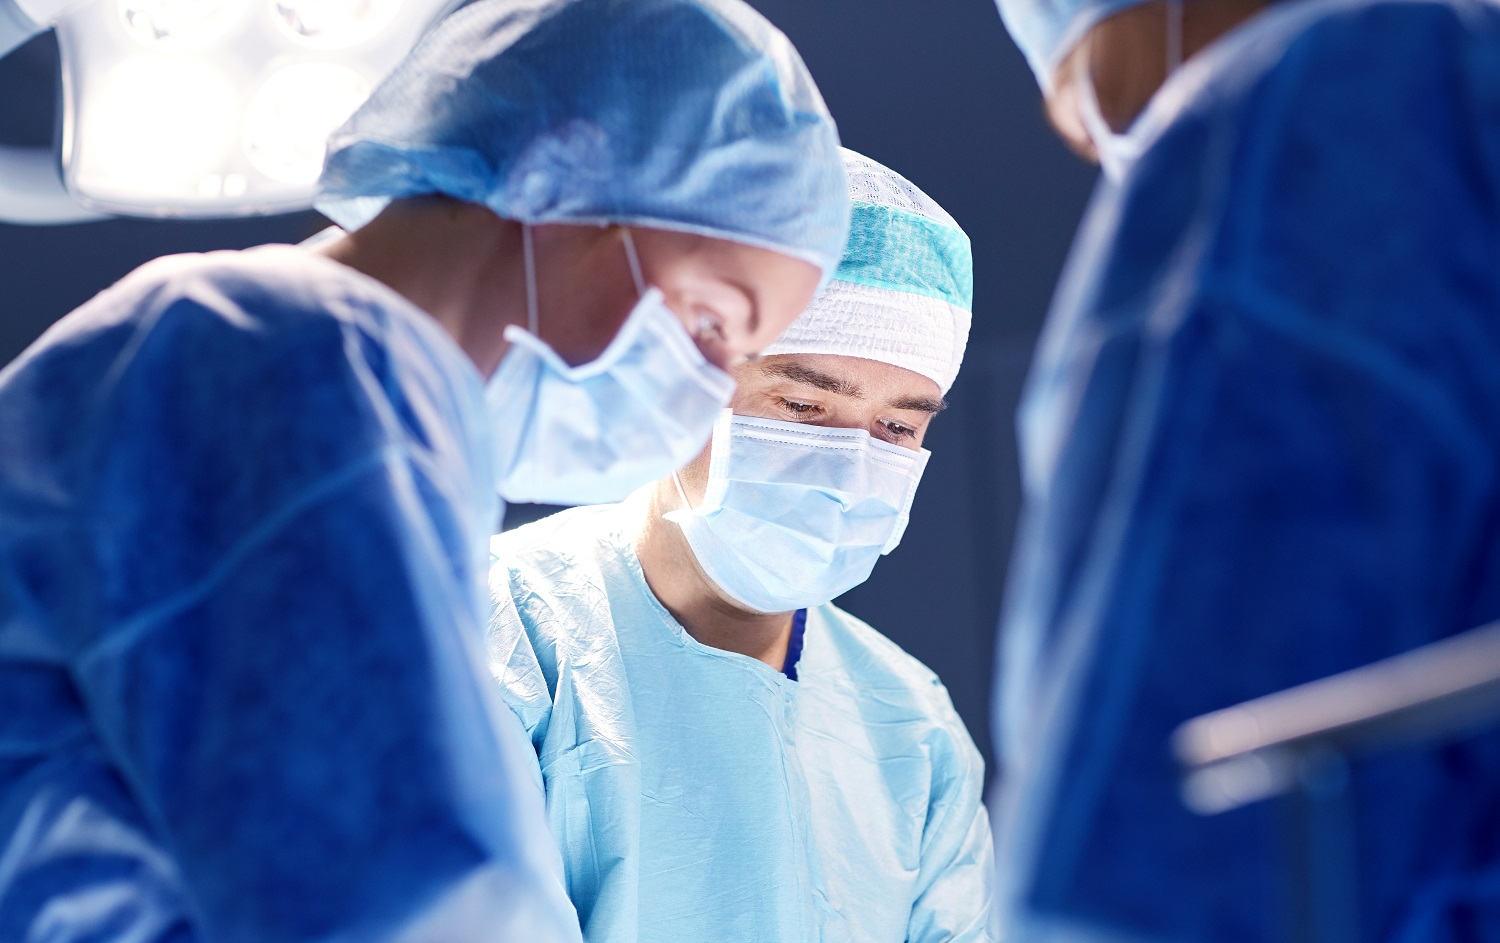 group-of-surgeons-in-operating-room-at-hospital-P5Q2EH6.jpg